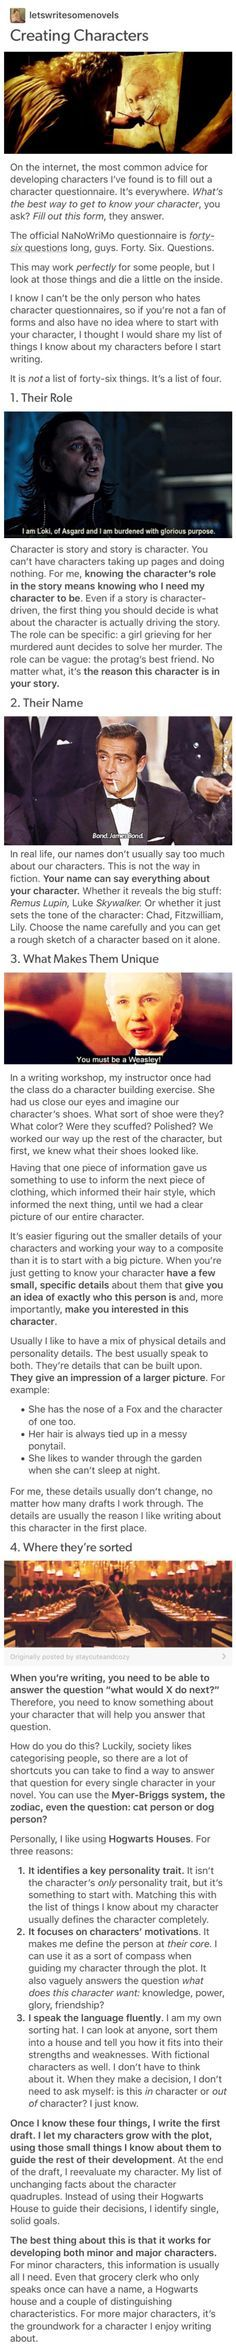 This is probably the most helpful writing advice I've ever read (characters, creating characters, character sketching) Writer Tips, Book Writing Tips, Writing Process, Writing Resources, Writing Help, Writing Skills, Writing Ideas, Writing Characters, Writing Inspiration